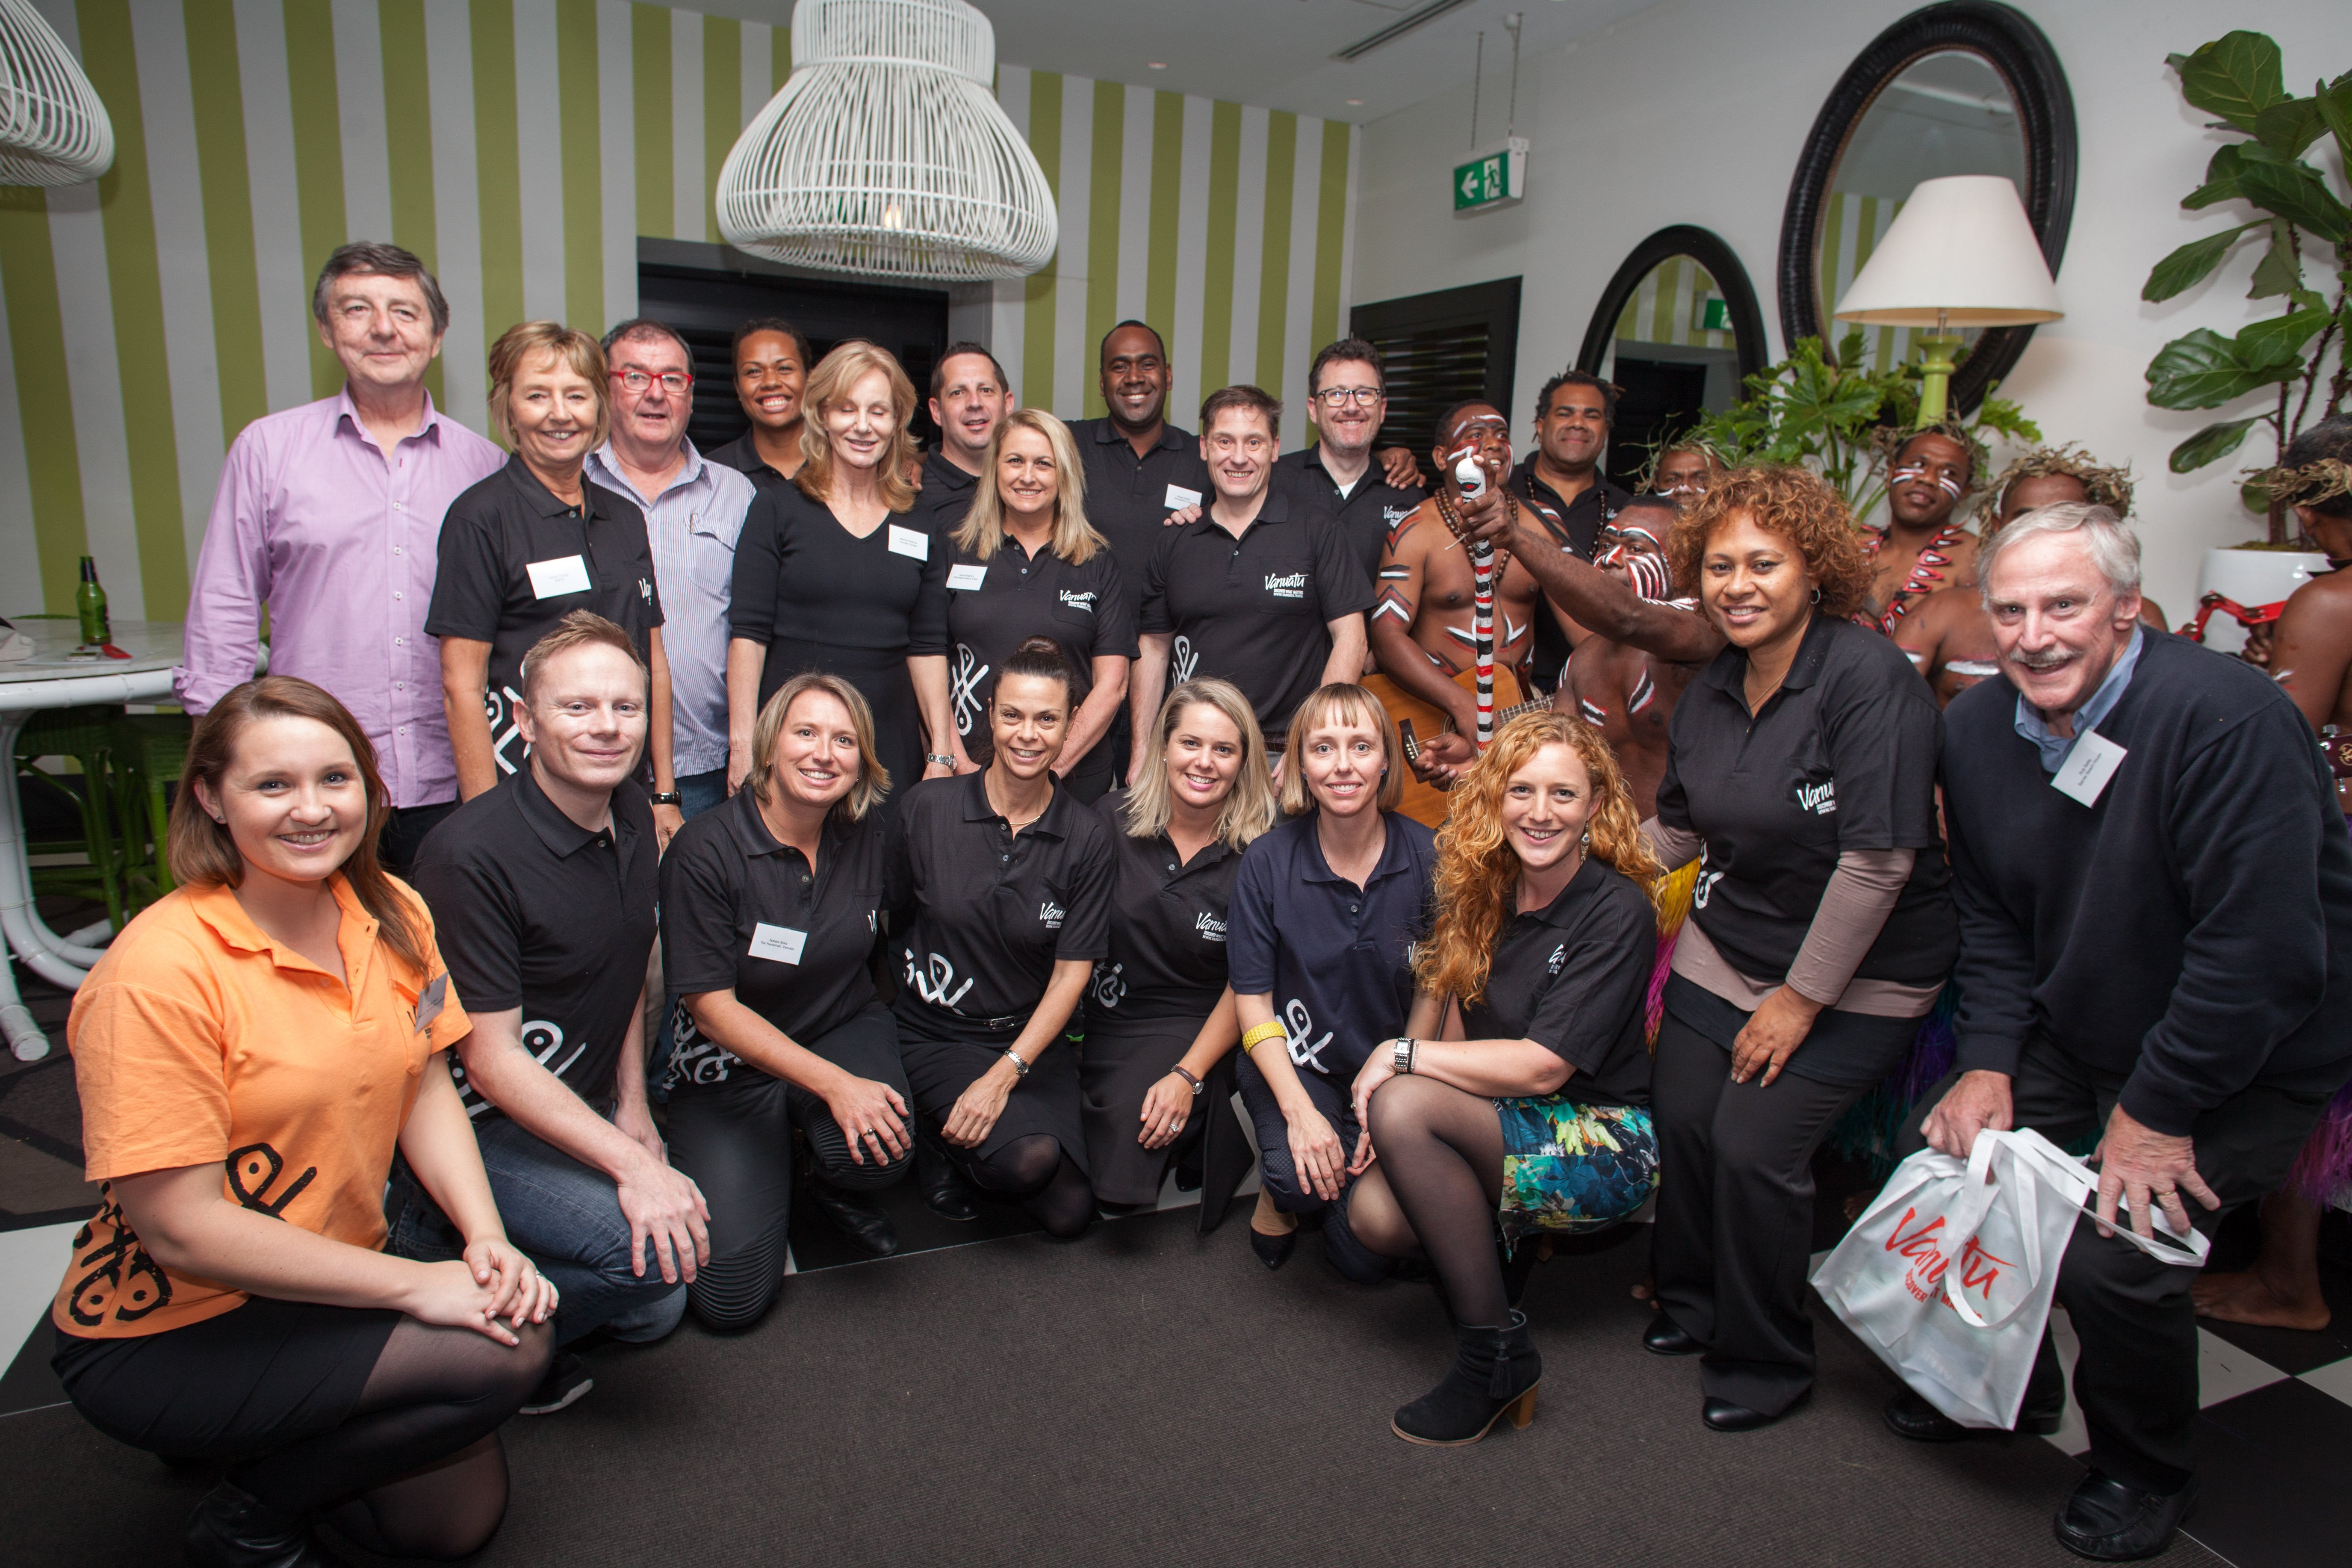 Vanuatu Tourism industry members in Sydney for roadshow